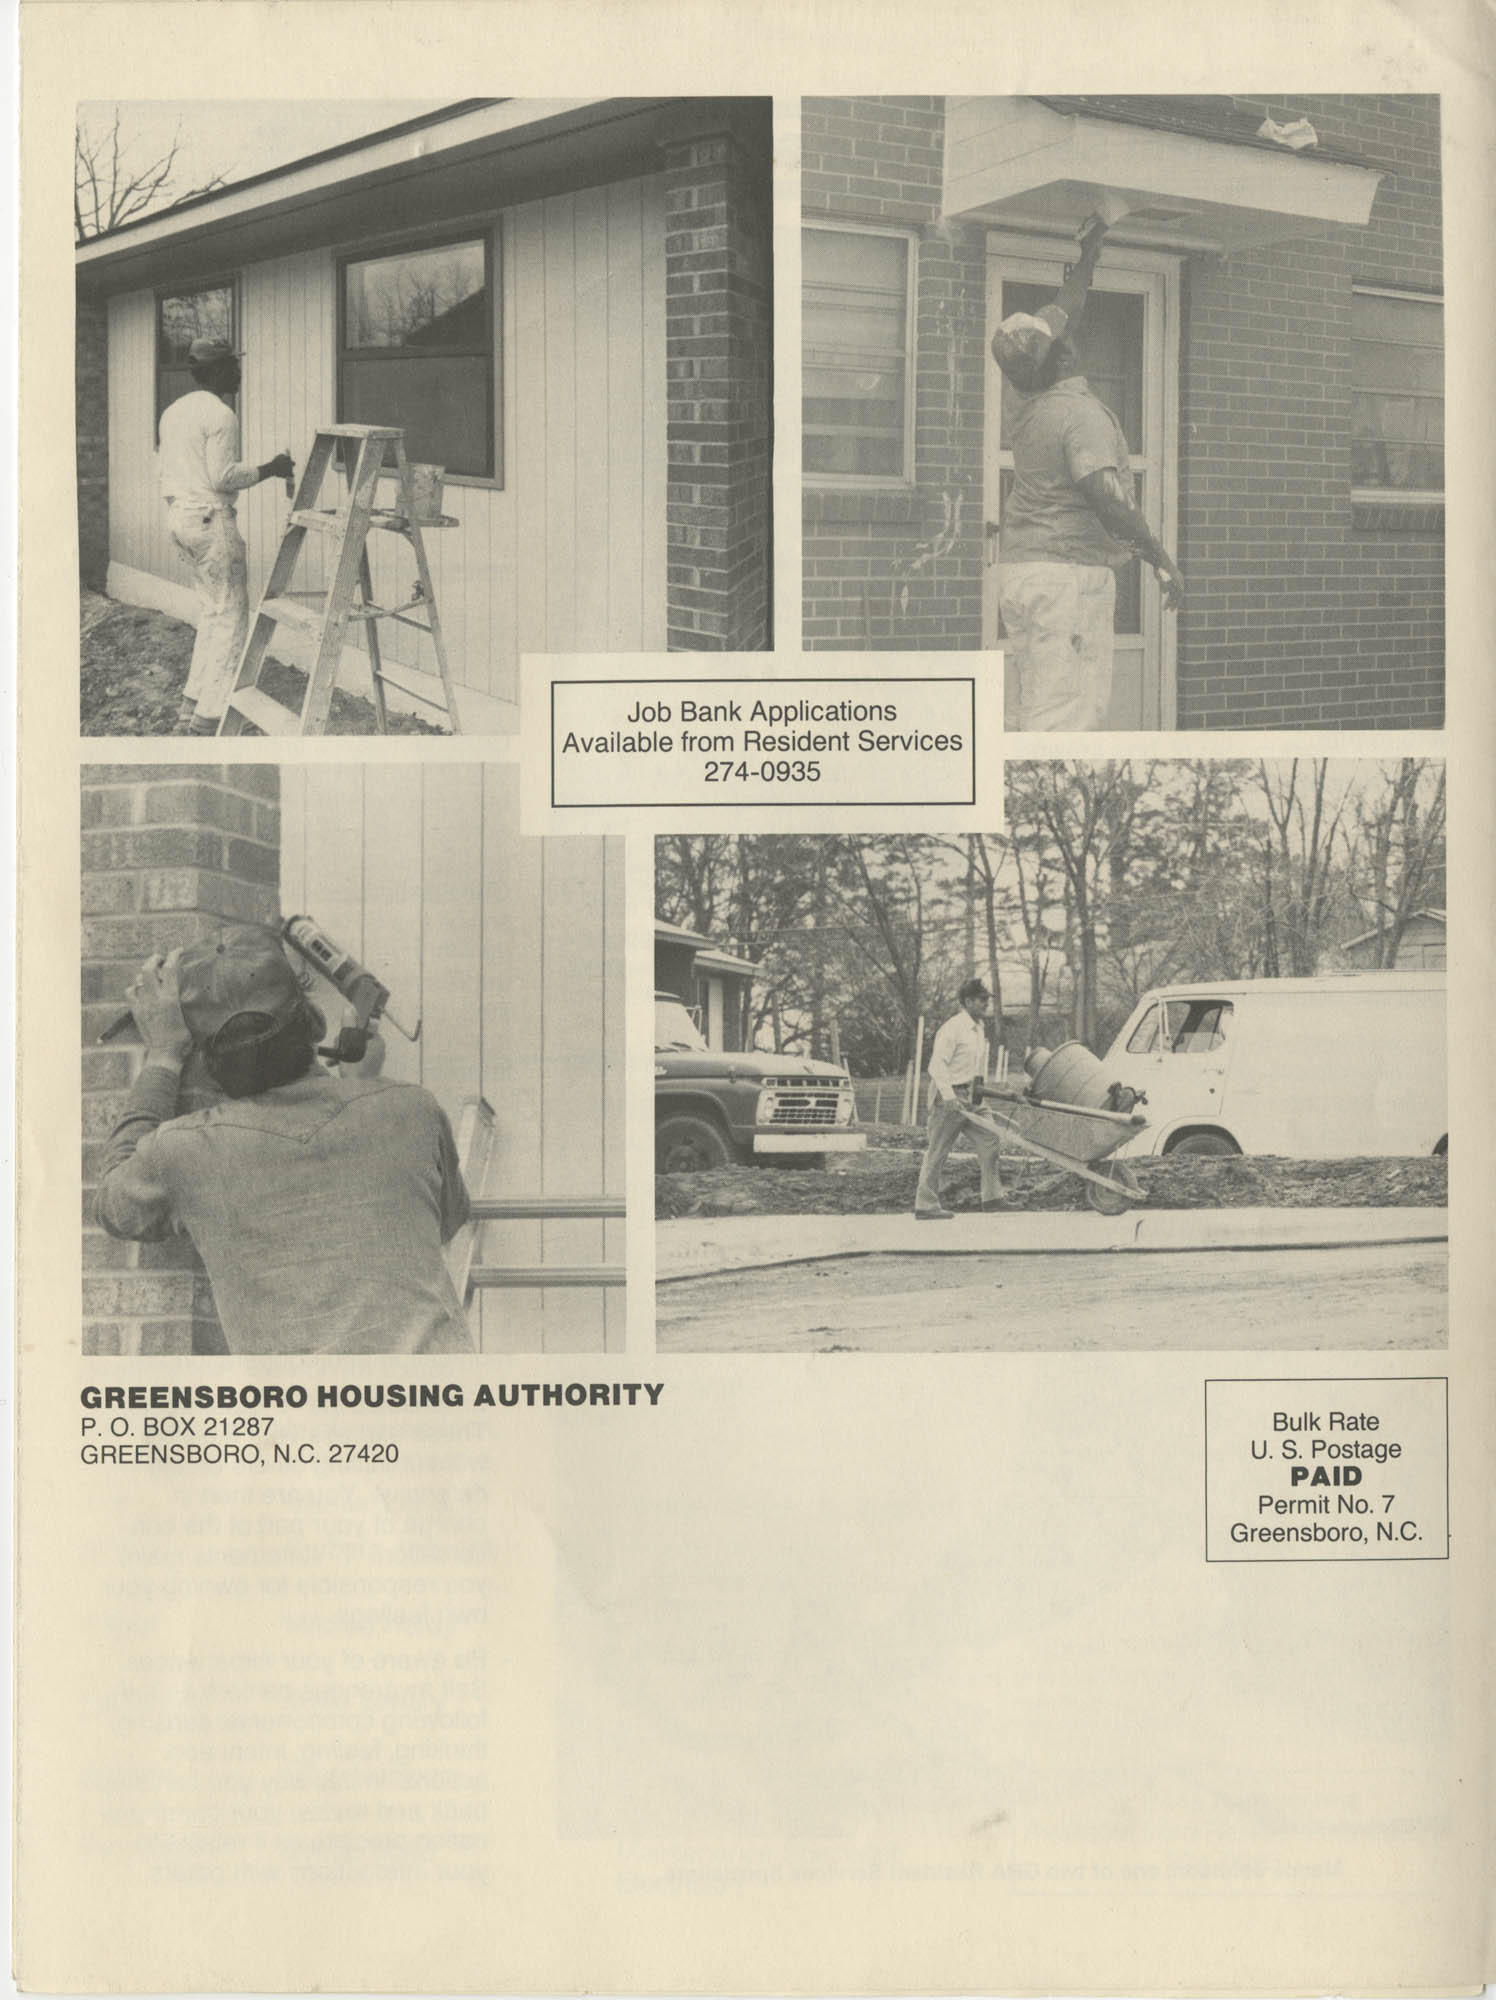 Greensboro Housing Authority Community News, Volume 8, Issue 2, Summer 1988